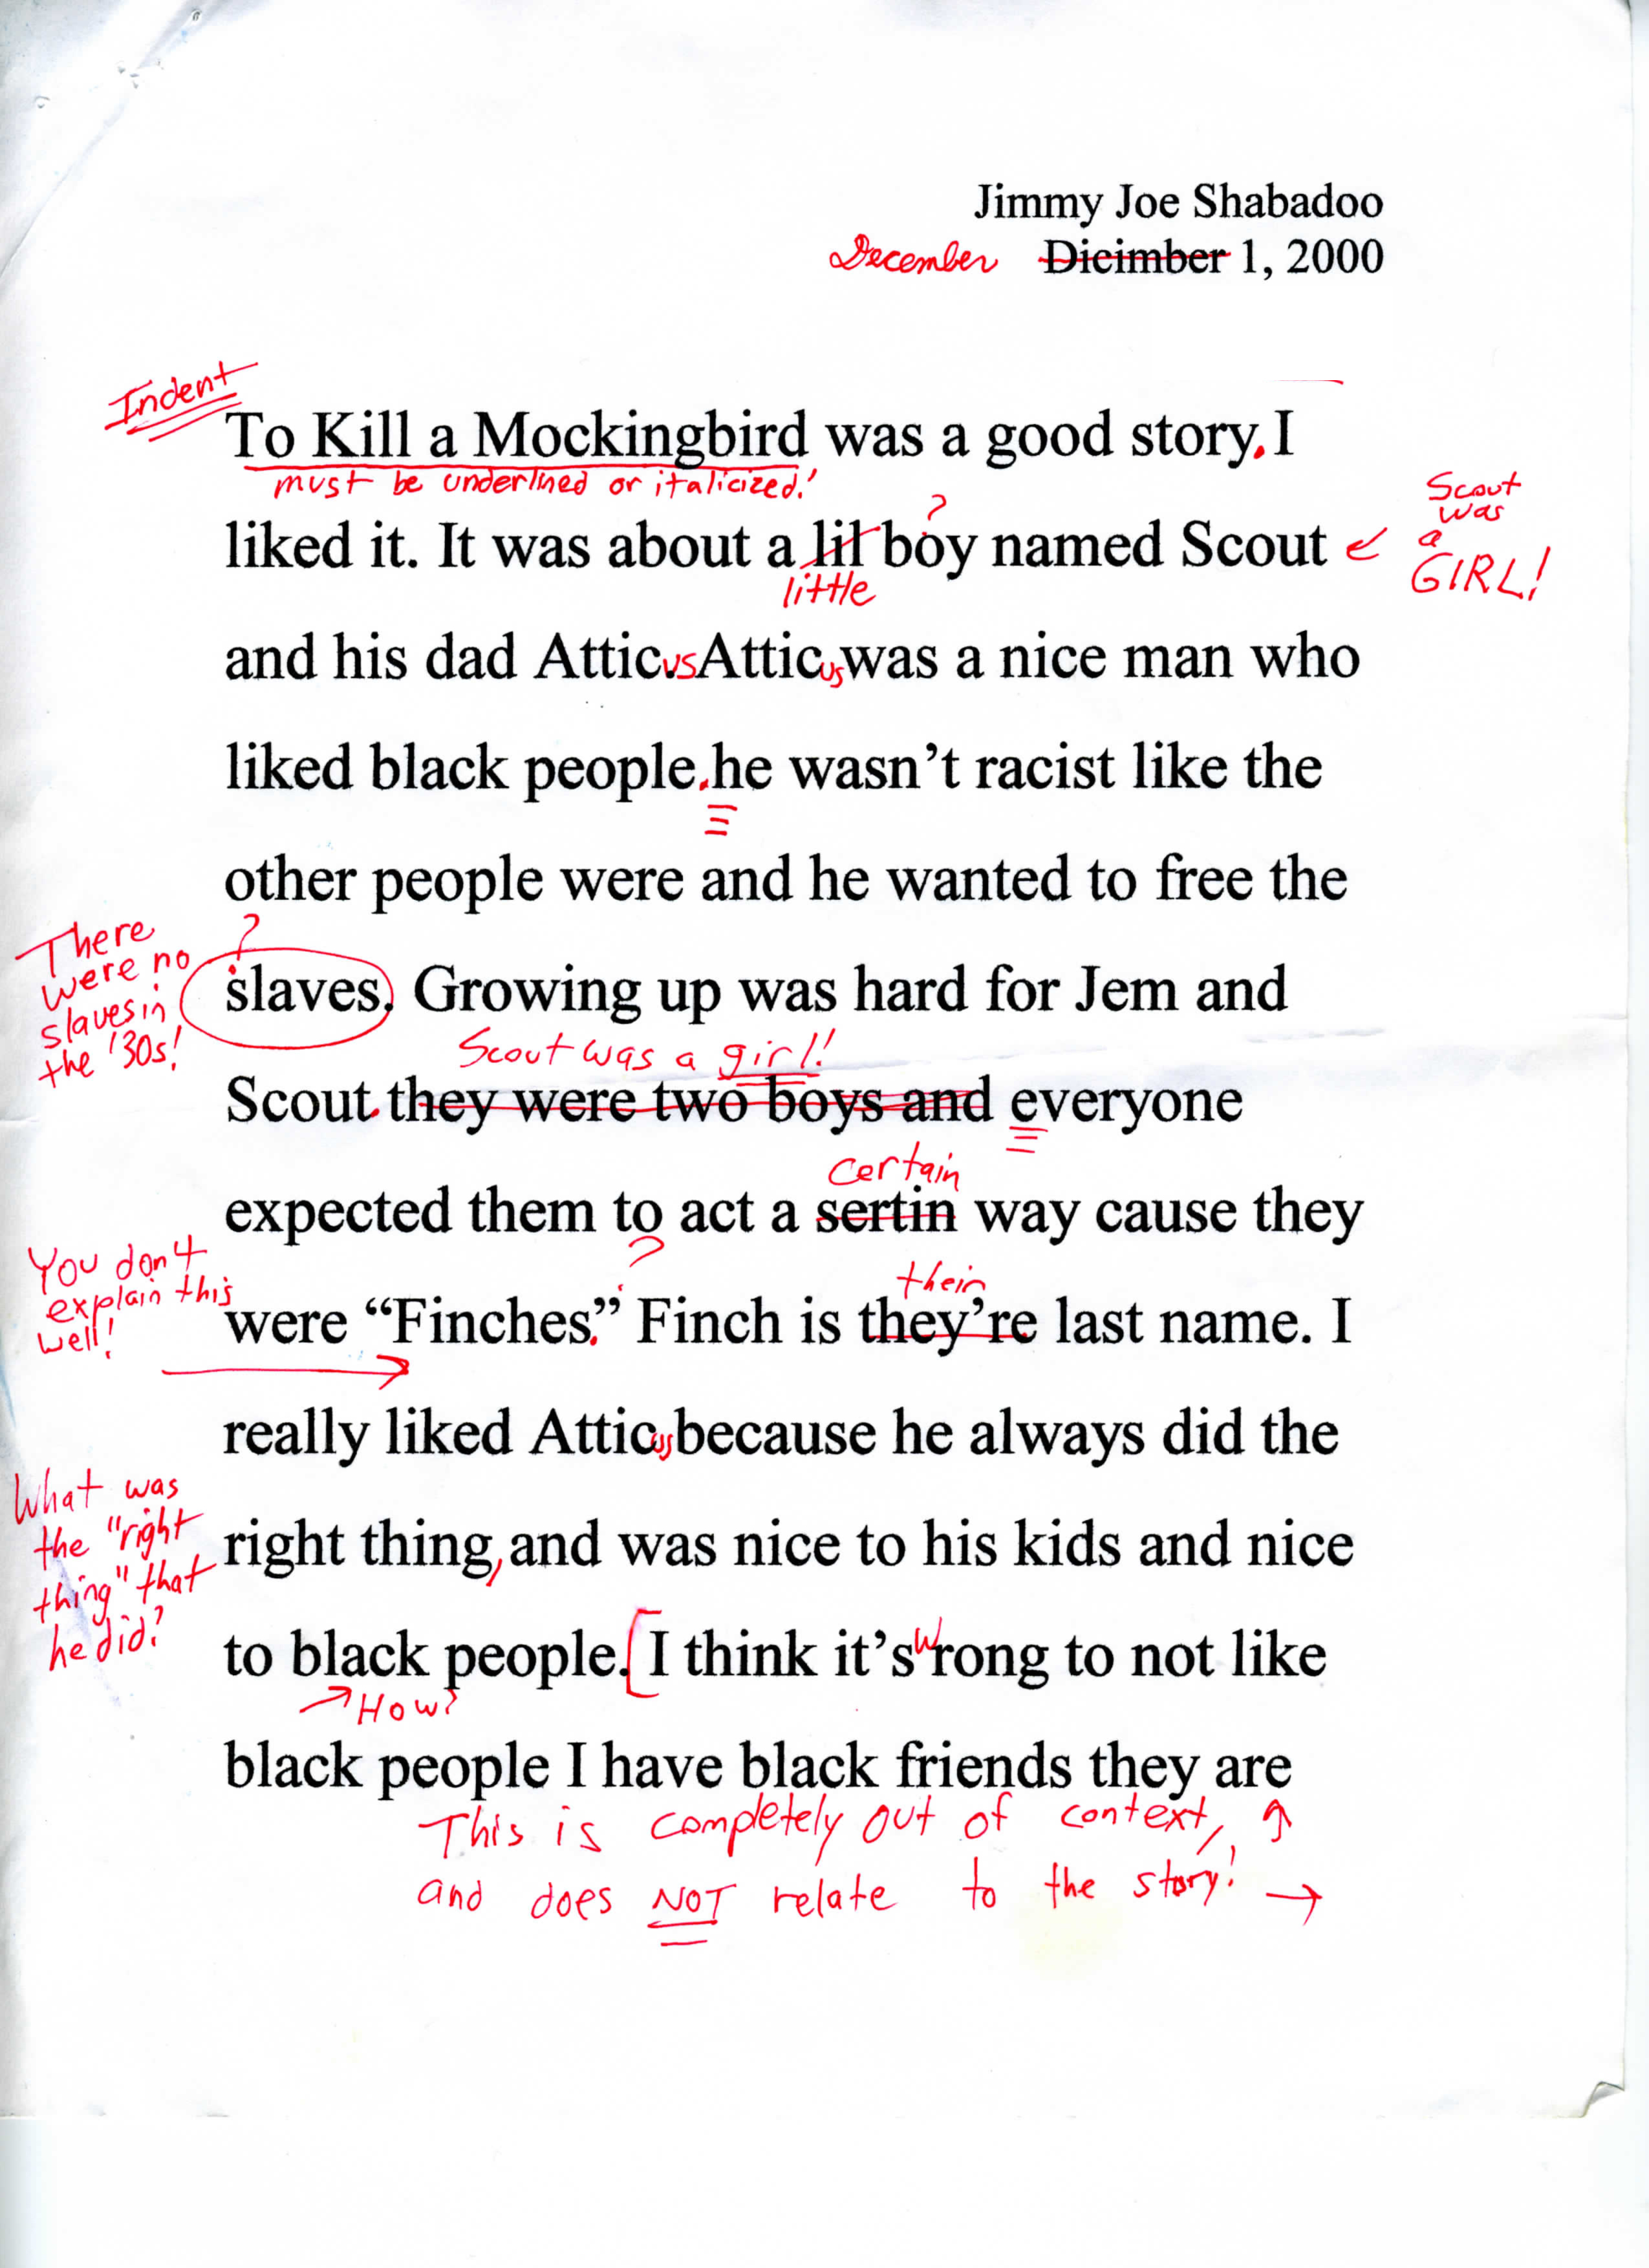 013 Essay Example To Kill Mockingbird Parody Paper Satirical Imposing Examples Satire On Love Gun Control Bullying Full